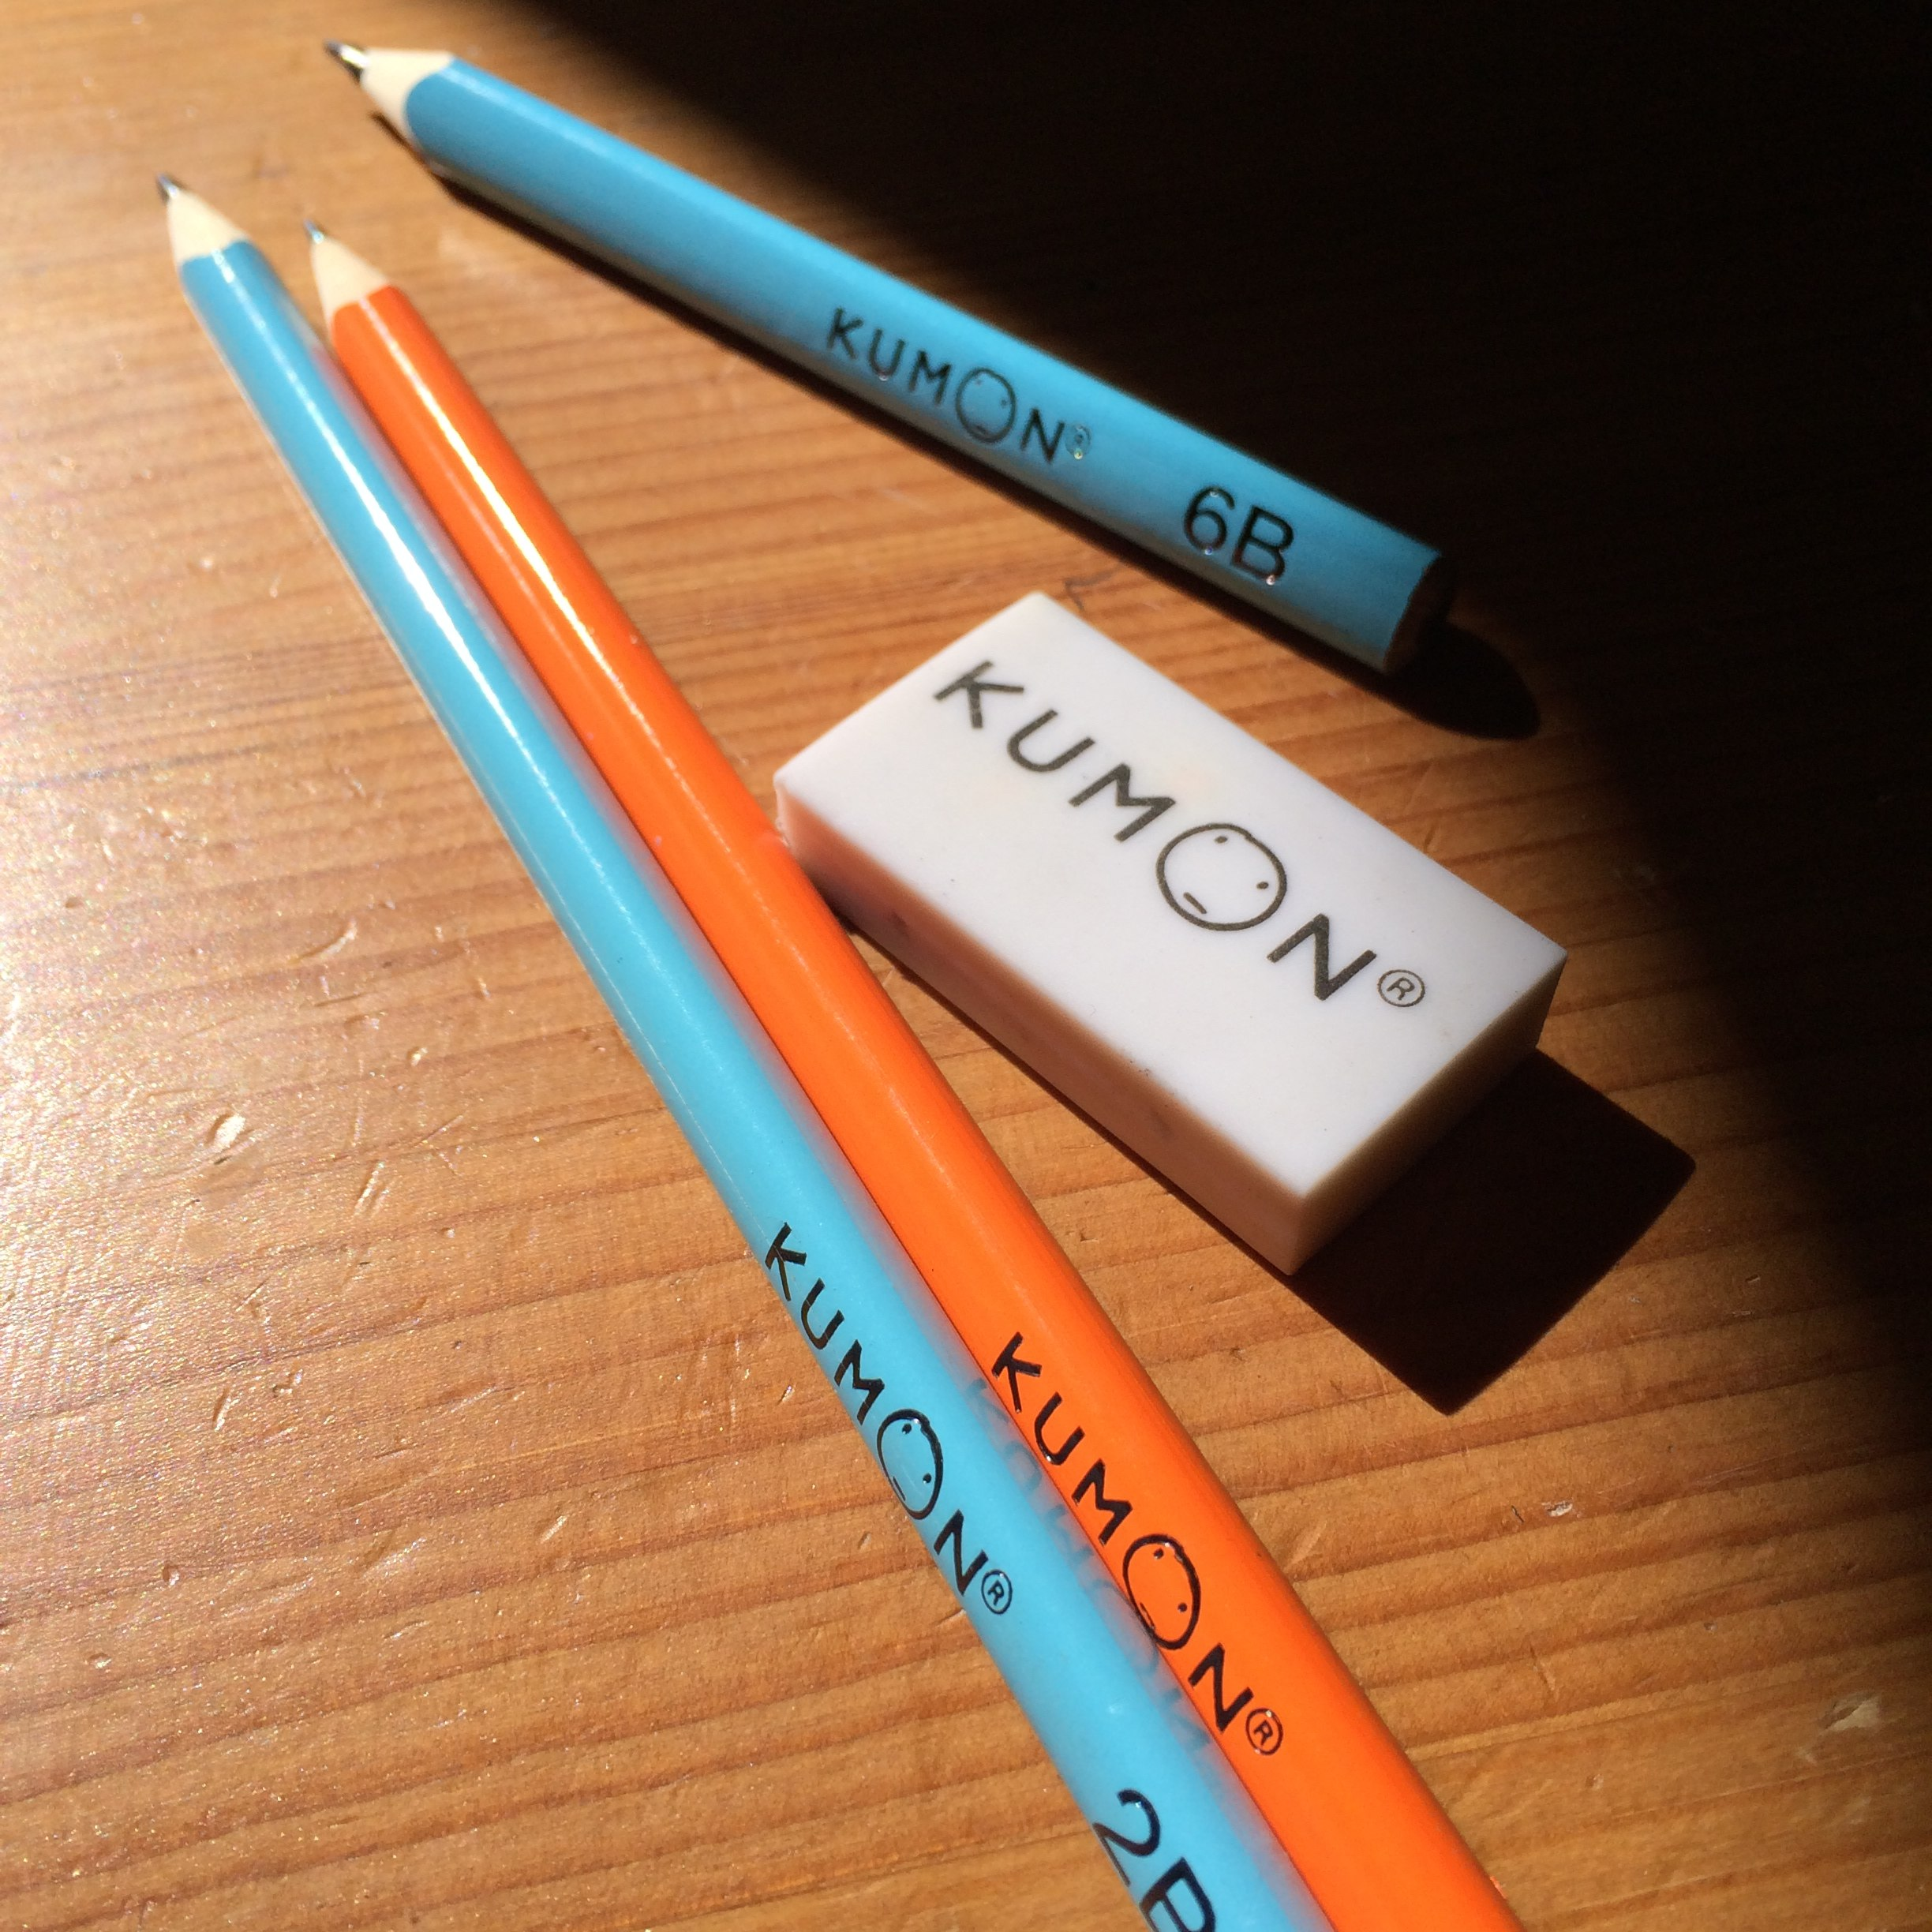 File Kumon Pencils Eraser